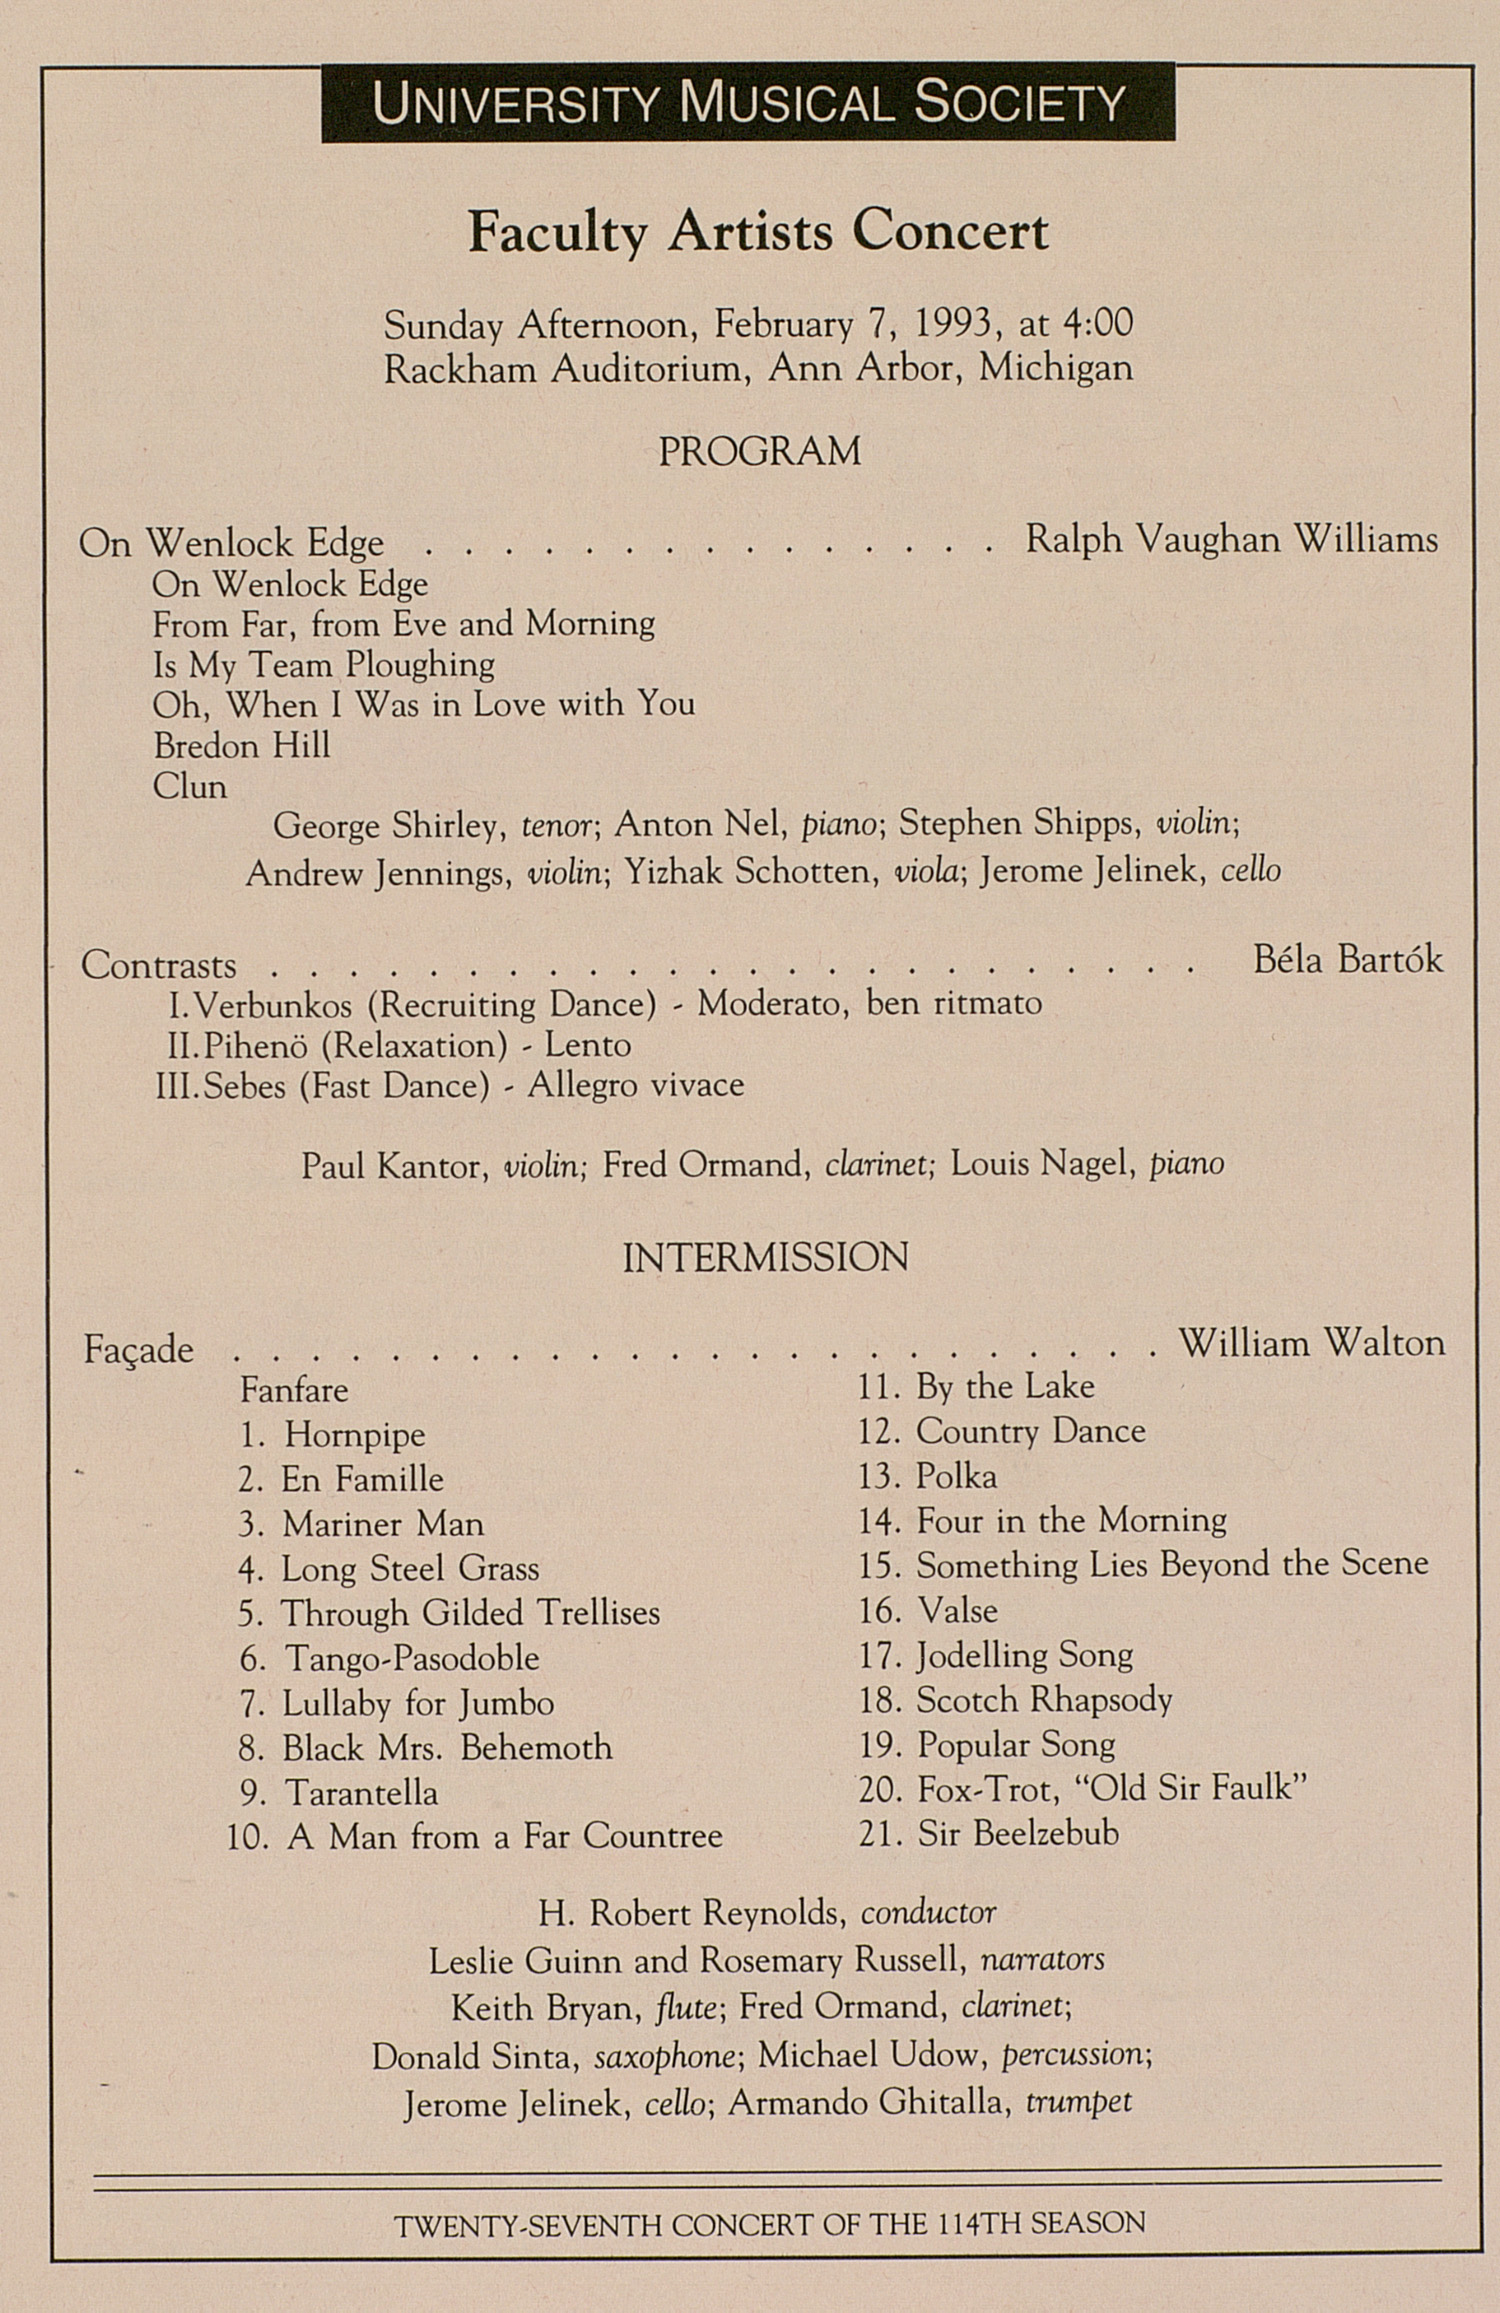 UMS Concert Program, February 7, 1993: Faculty Artists Concert --  image